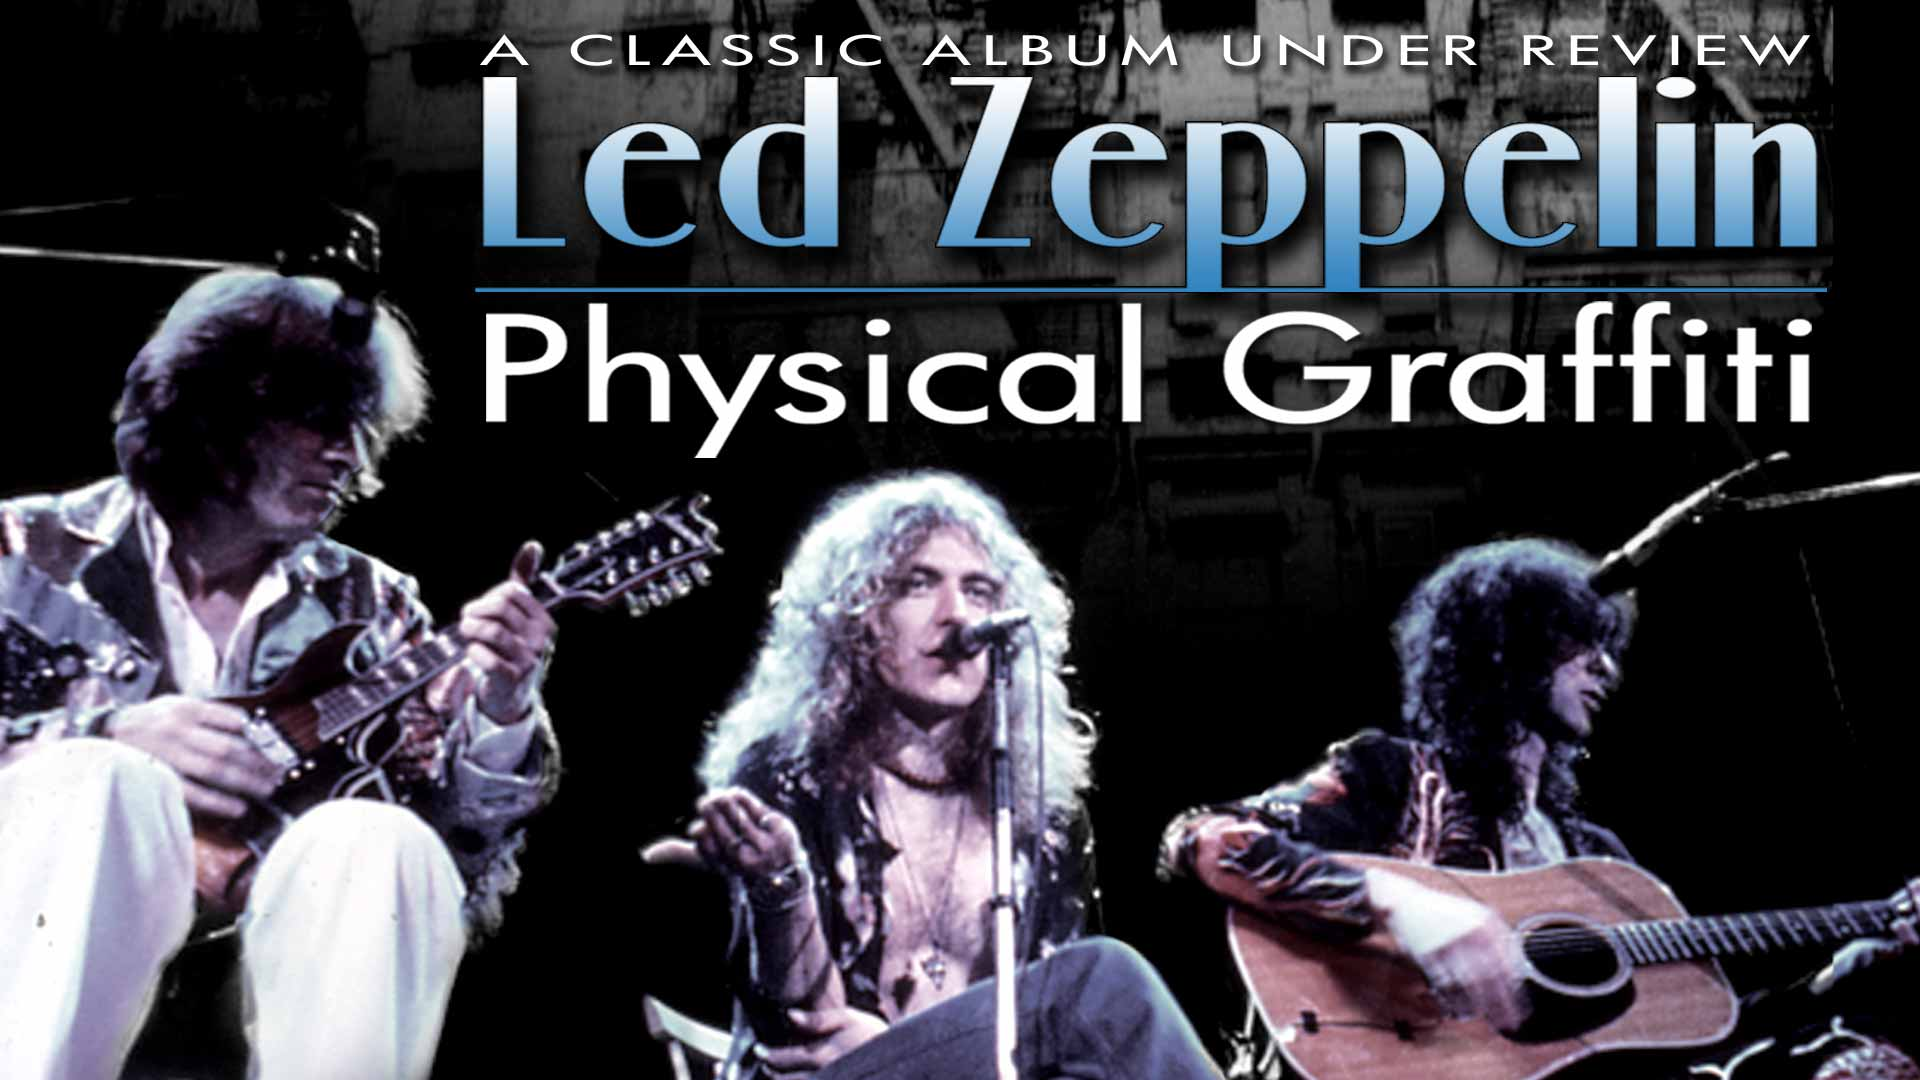 Led Zeppelin: Physical Graffiti - A Classic Album Under Review